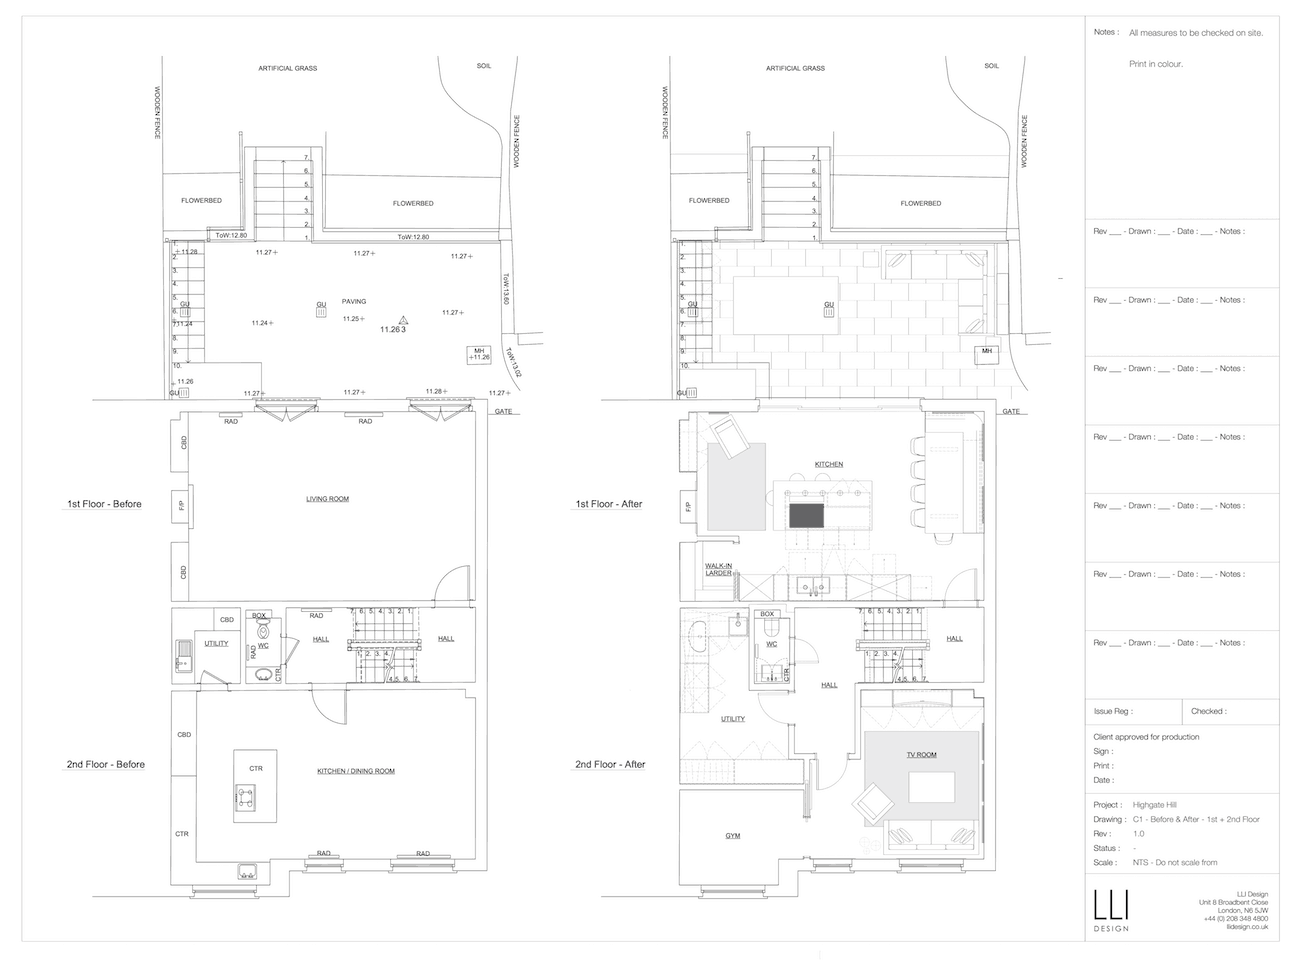 Floor plan for 1st and 2nd floors of townhouse before and after a renovation.